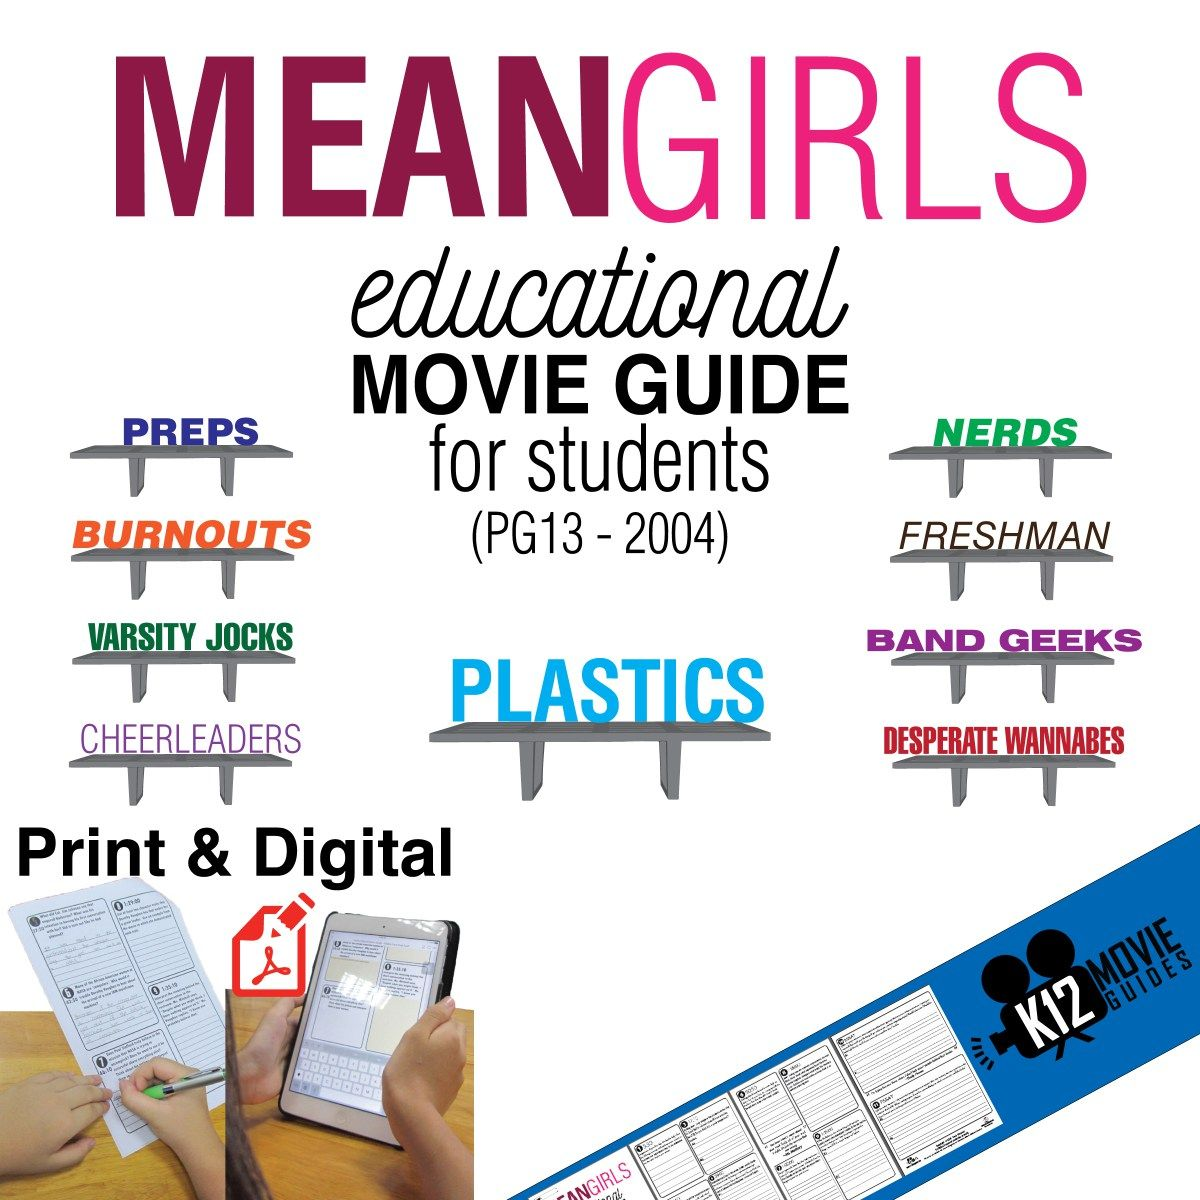 Mean Girls Movie Guide in 2018 | Educational Movie Guides ...